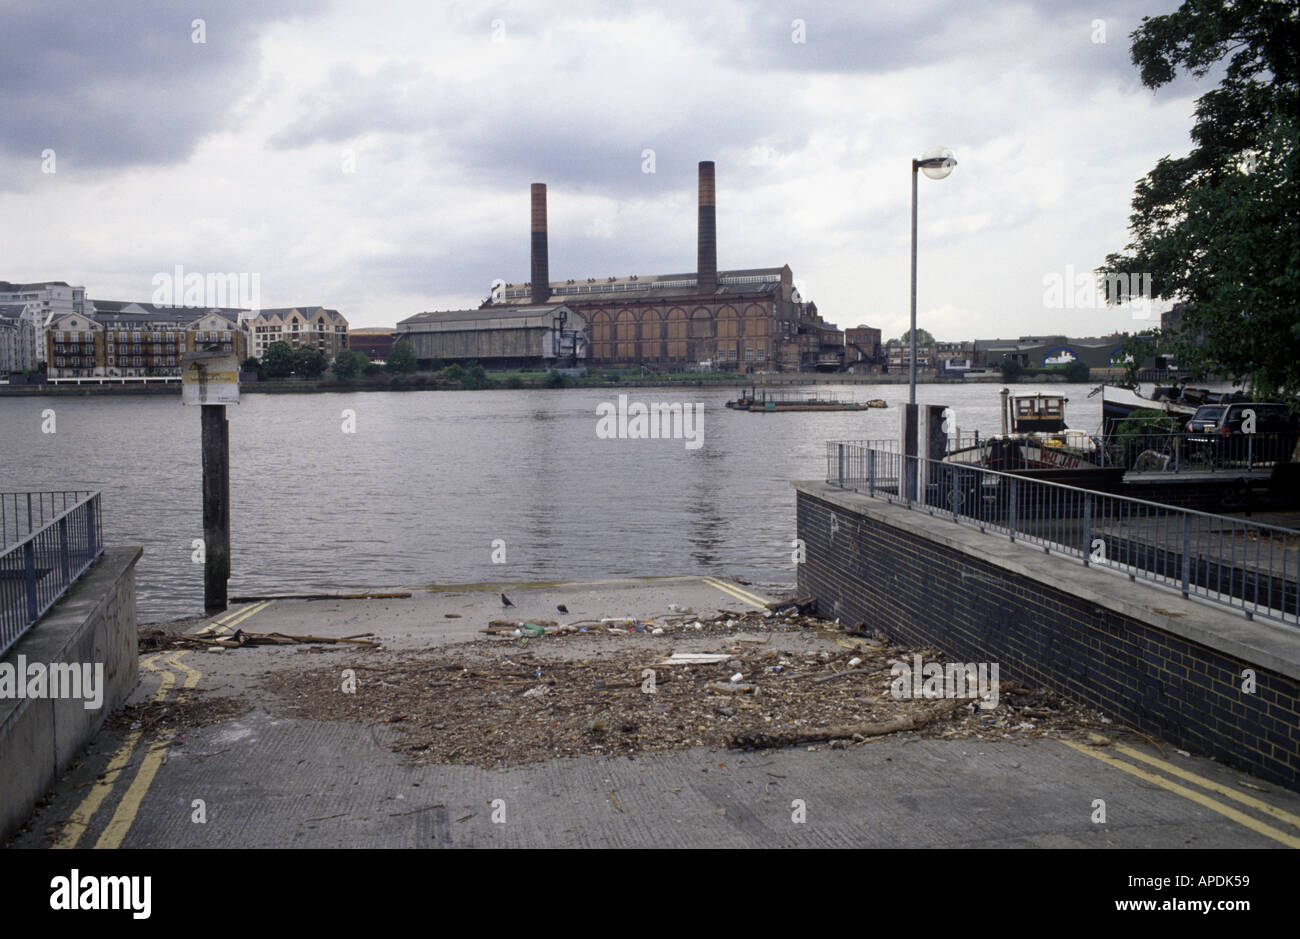 The River Thames looking towards Chelsea in  West London - Stock Image